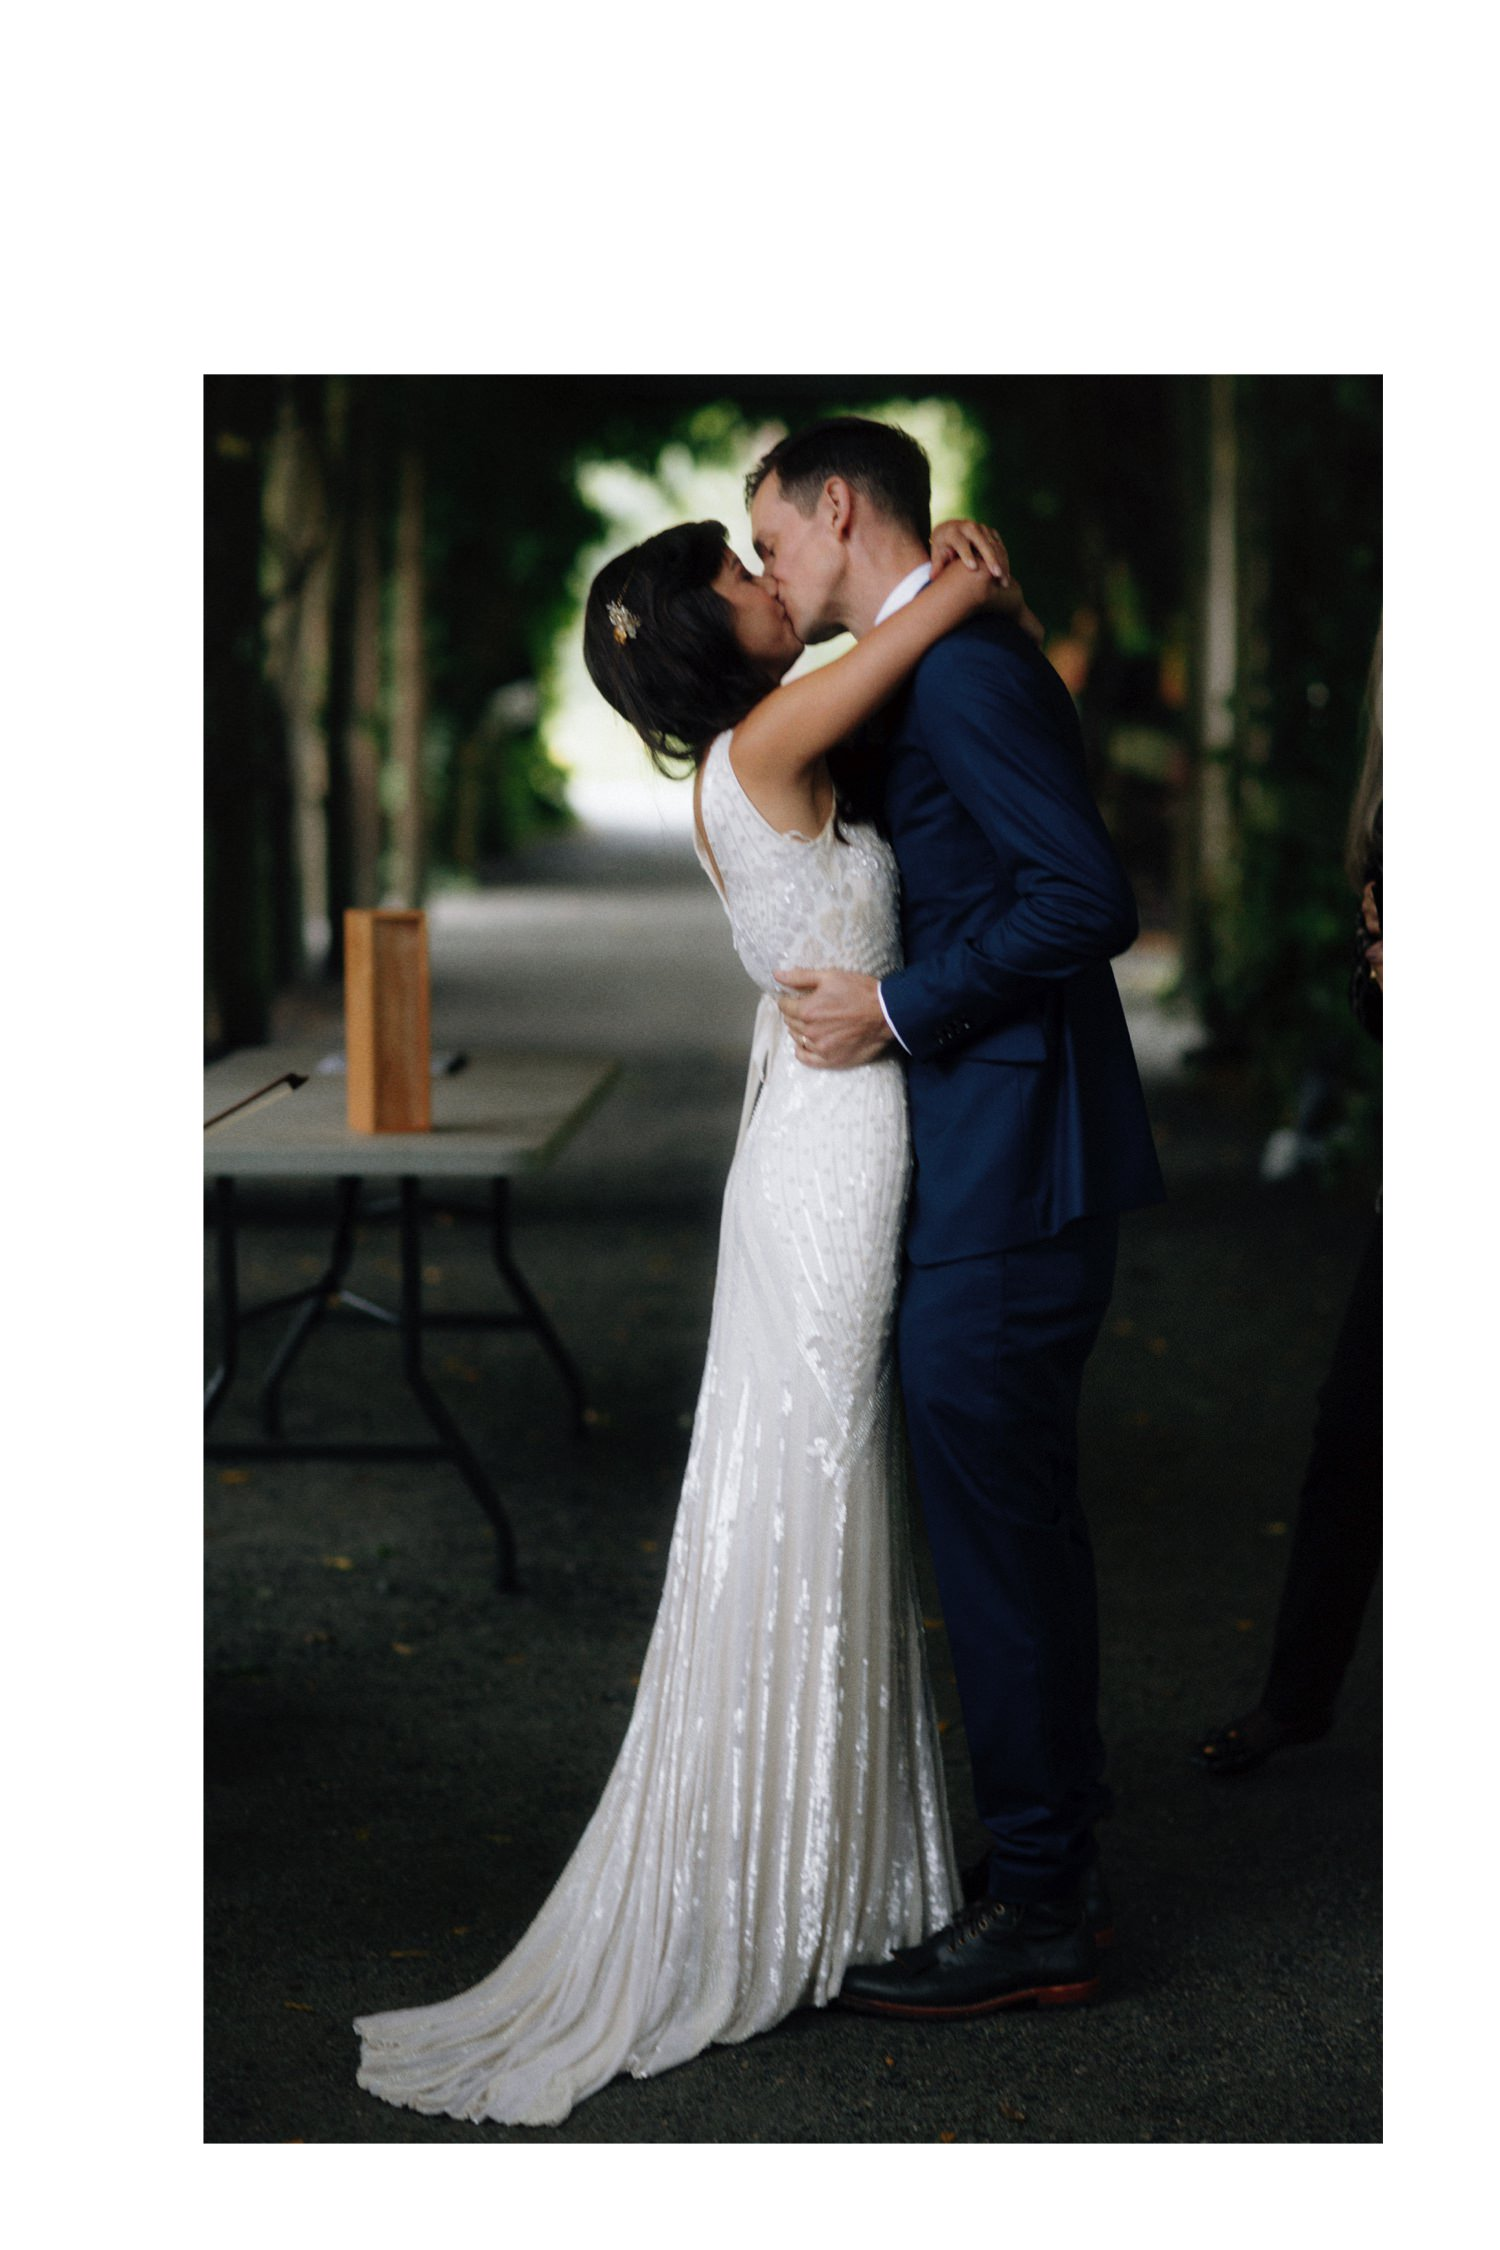 first kiss as bride and groom at ubc botanical garden weding